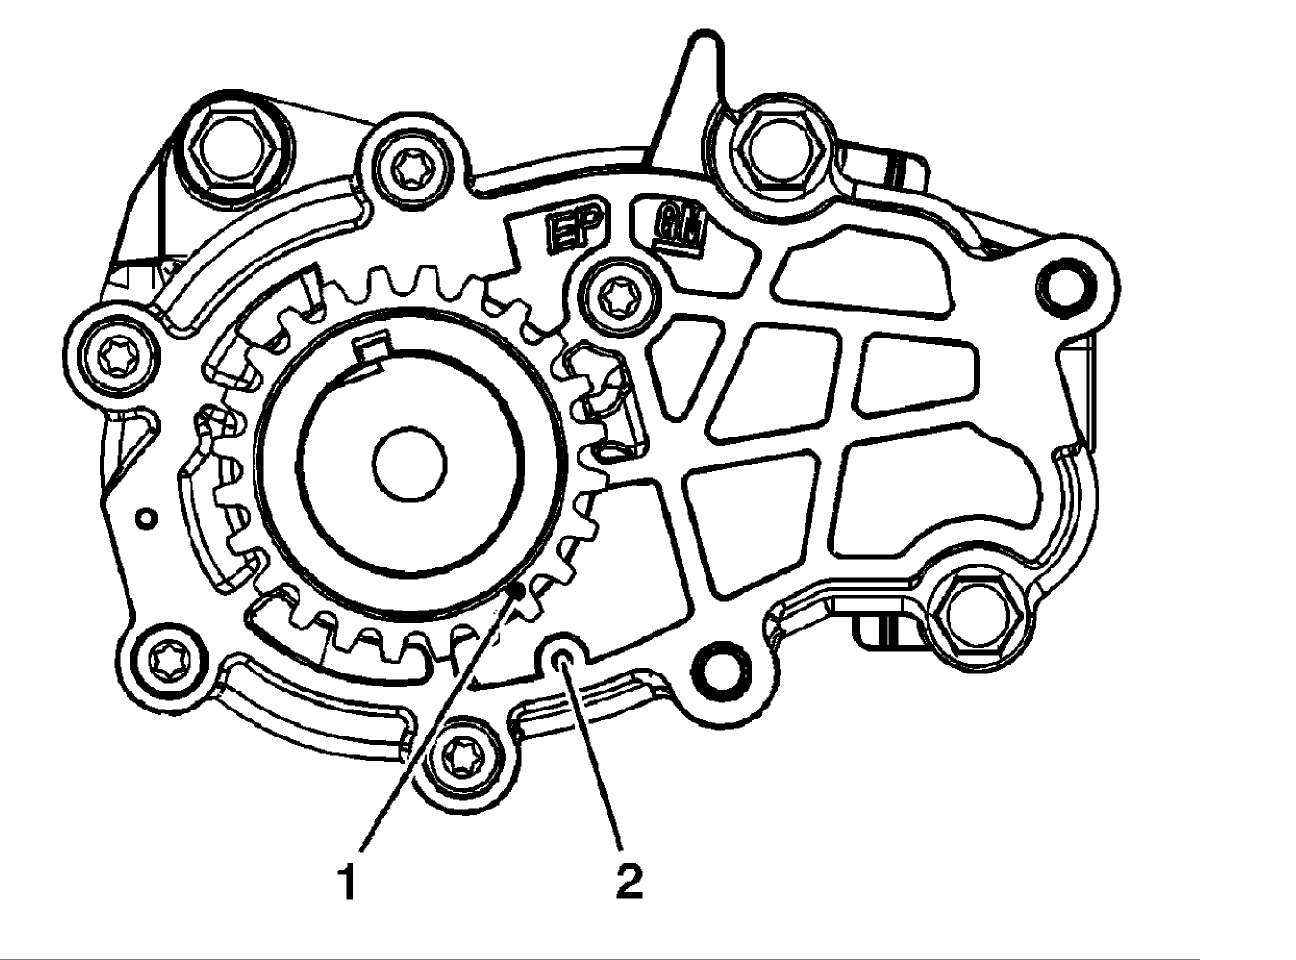 How To Replace Time Chain On 2008 Suzuki Xl7 I Need Clear Diagrams 2007 Engine Diagram Graphic